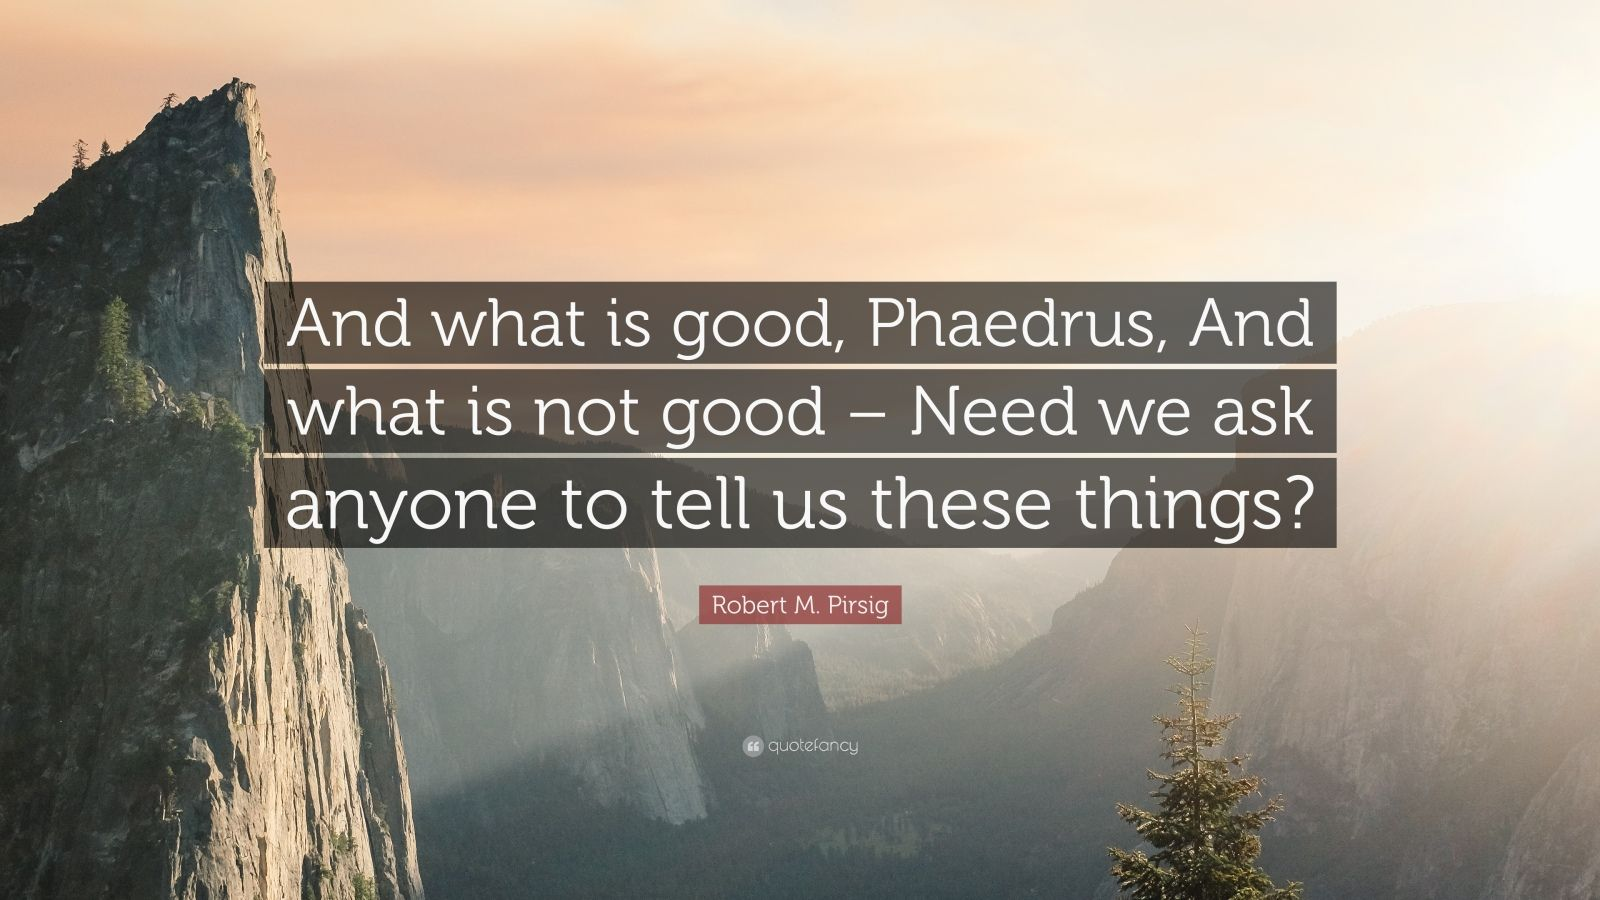 """Robert M. Pirsig Quote: """"And what is good, Phaedrus, And what is not good – Need we ask anyone to tell us these things?"""""""